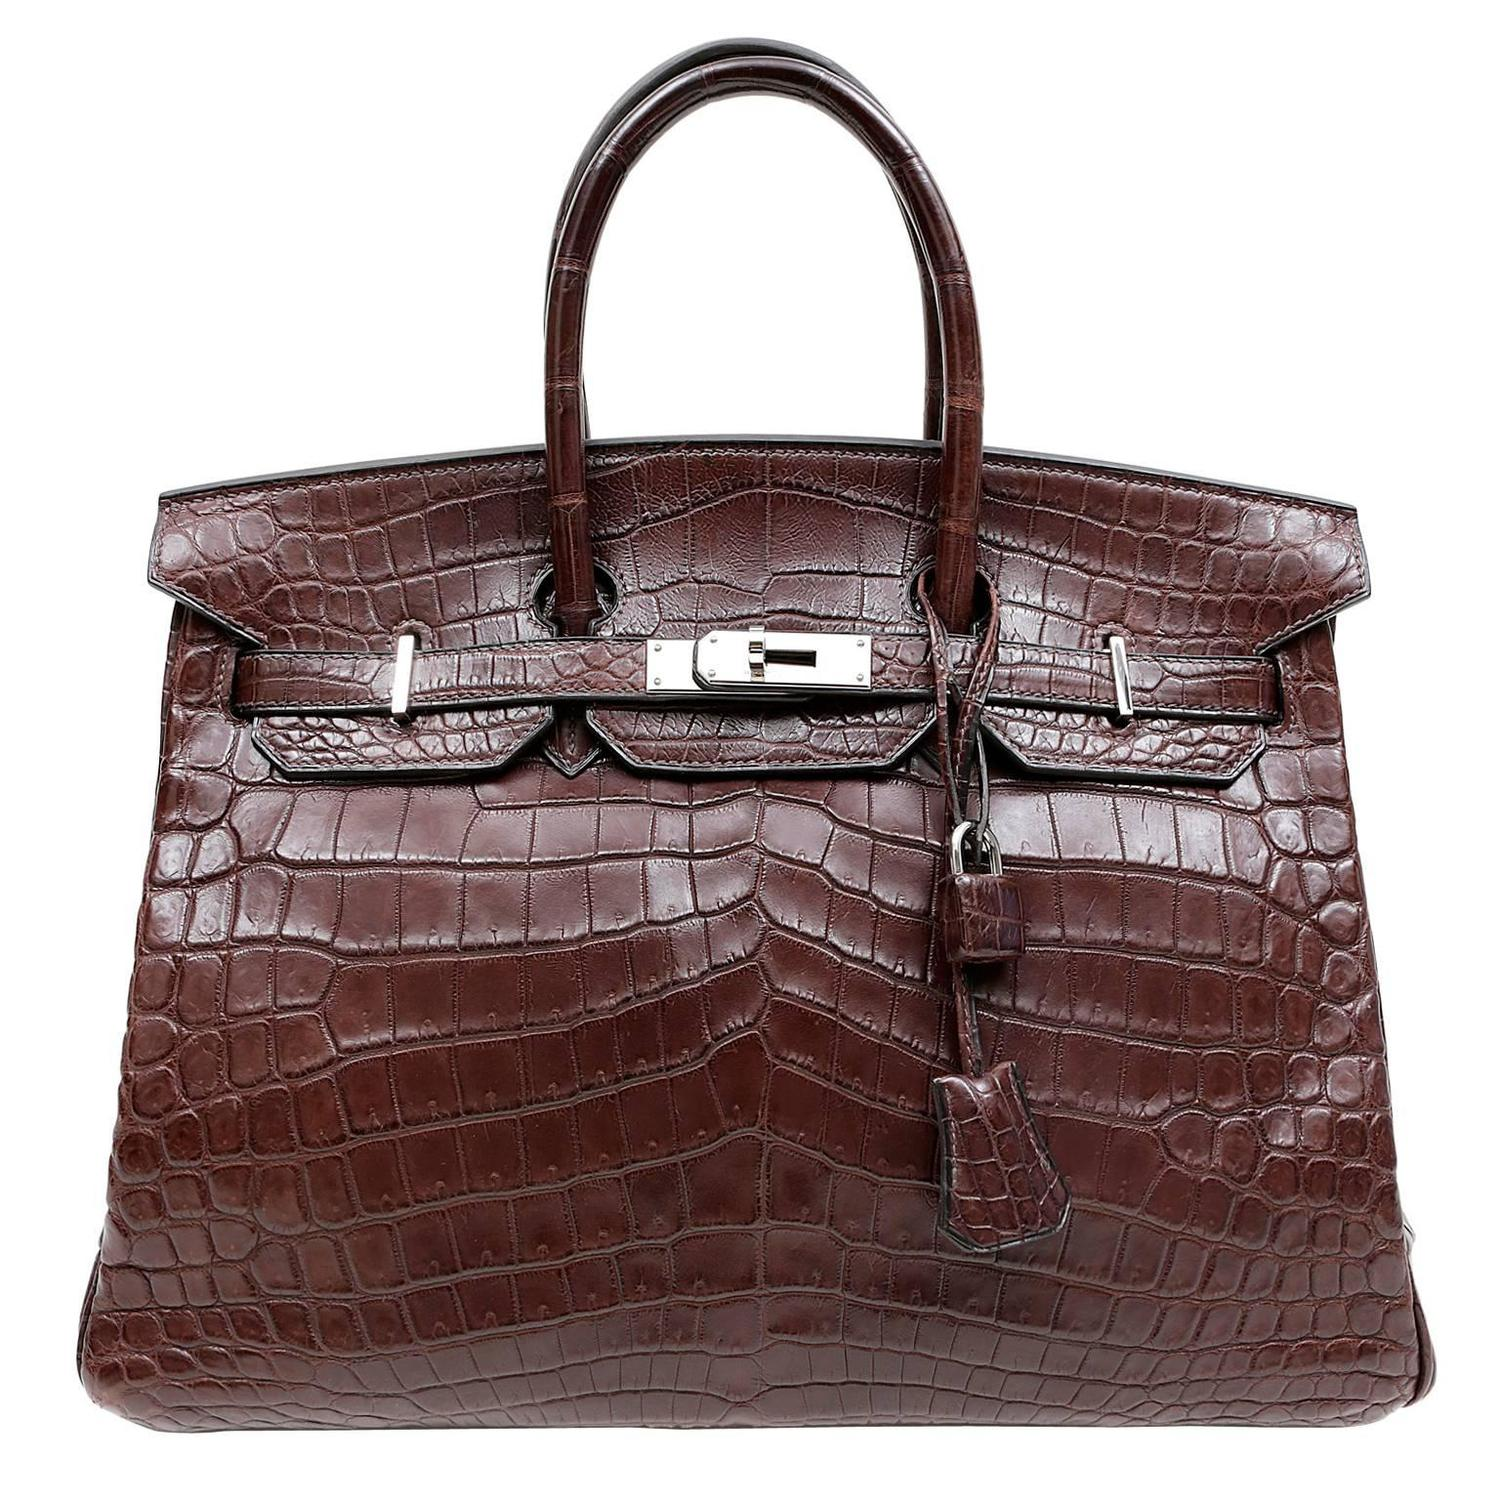 fake hermes leather purses - Herm��s Ebony Brown Ebene Nilo Croc 35 cm Birkin PHW For Sale at ...